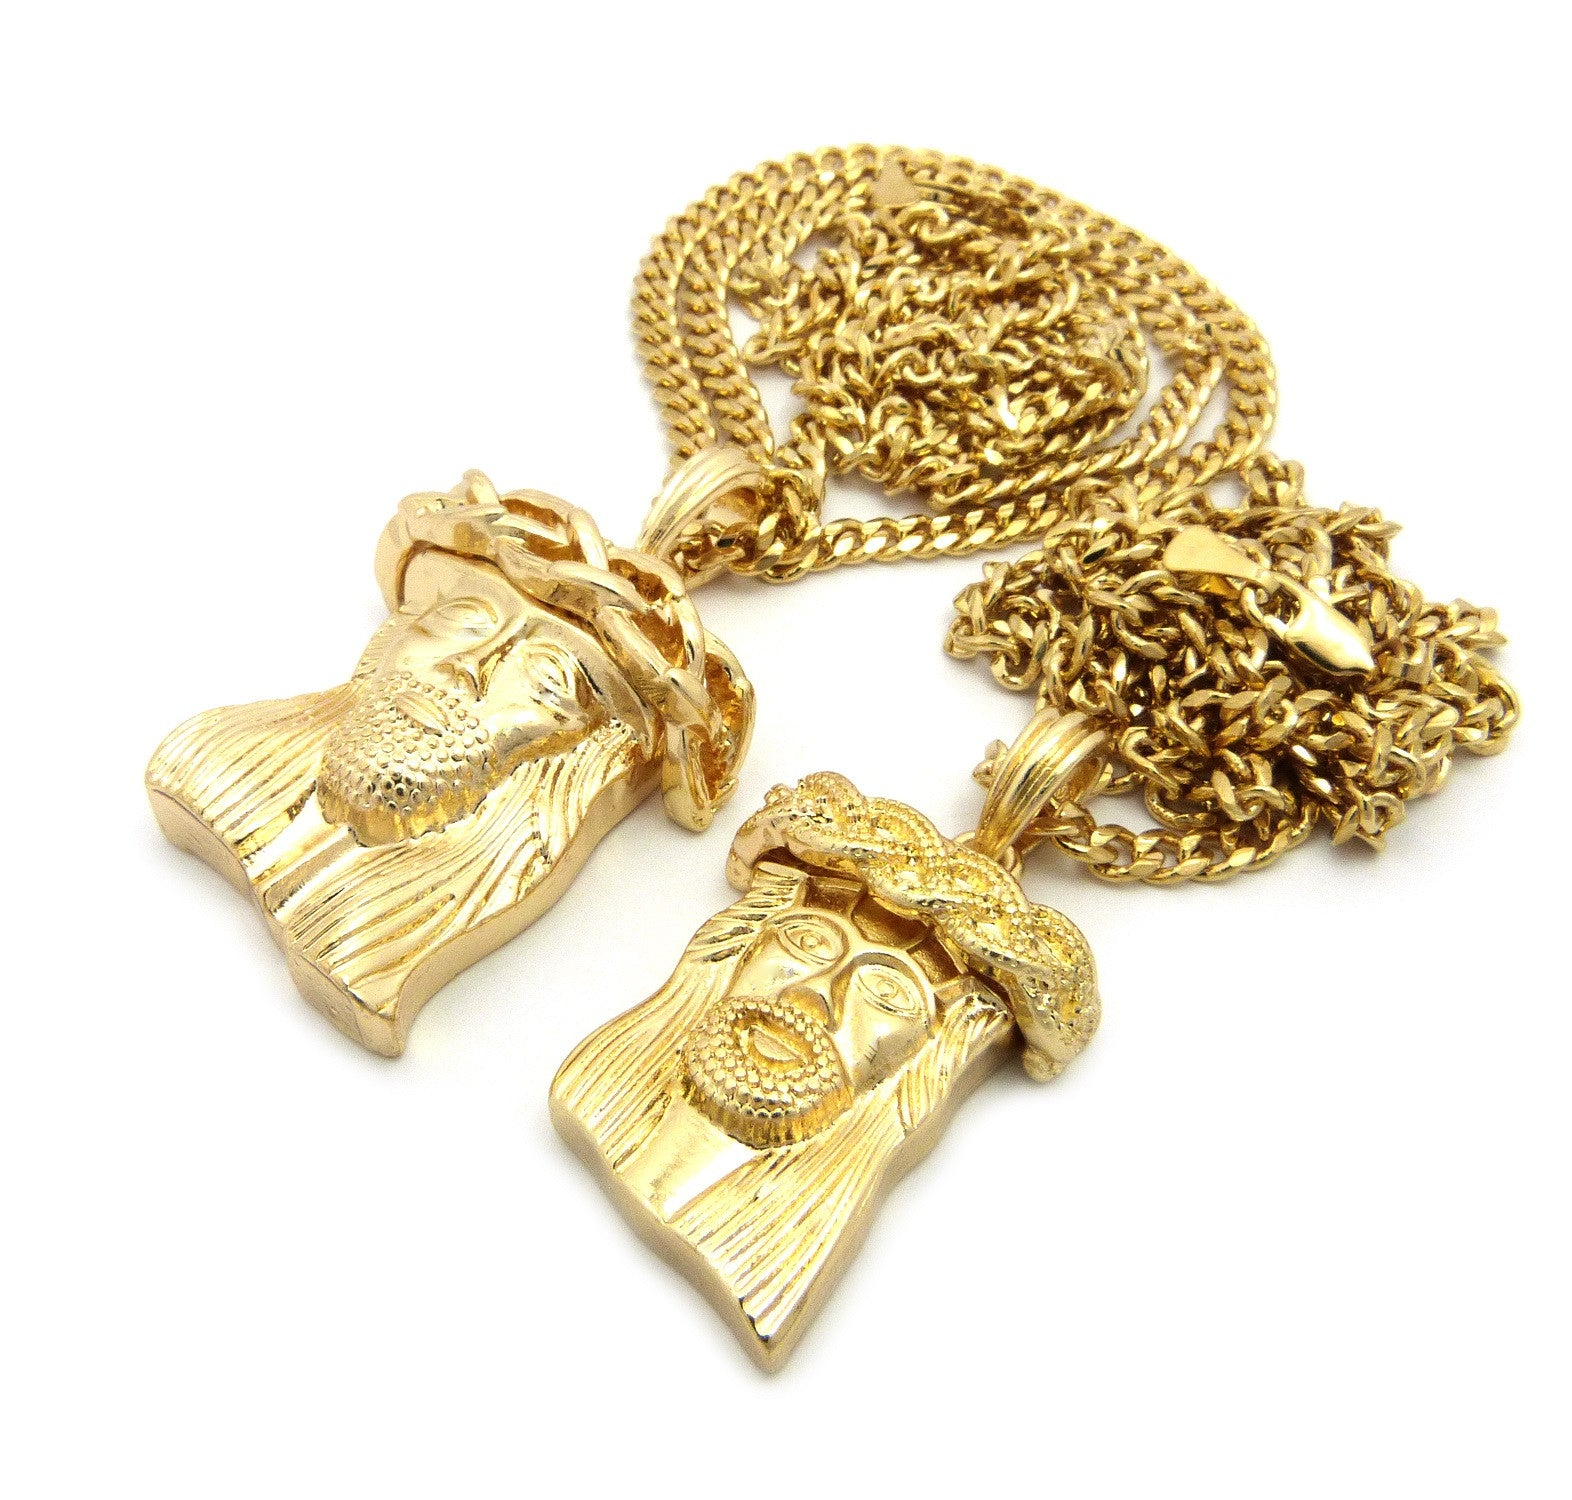 2 Chain Set: Jesus Piece and Weaved Crown Jesus Piece On 24inch and 30inch Cuban Links Chains